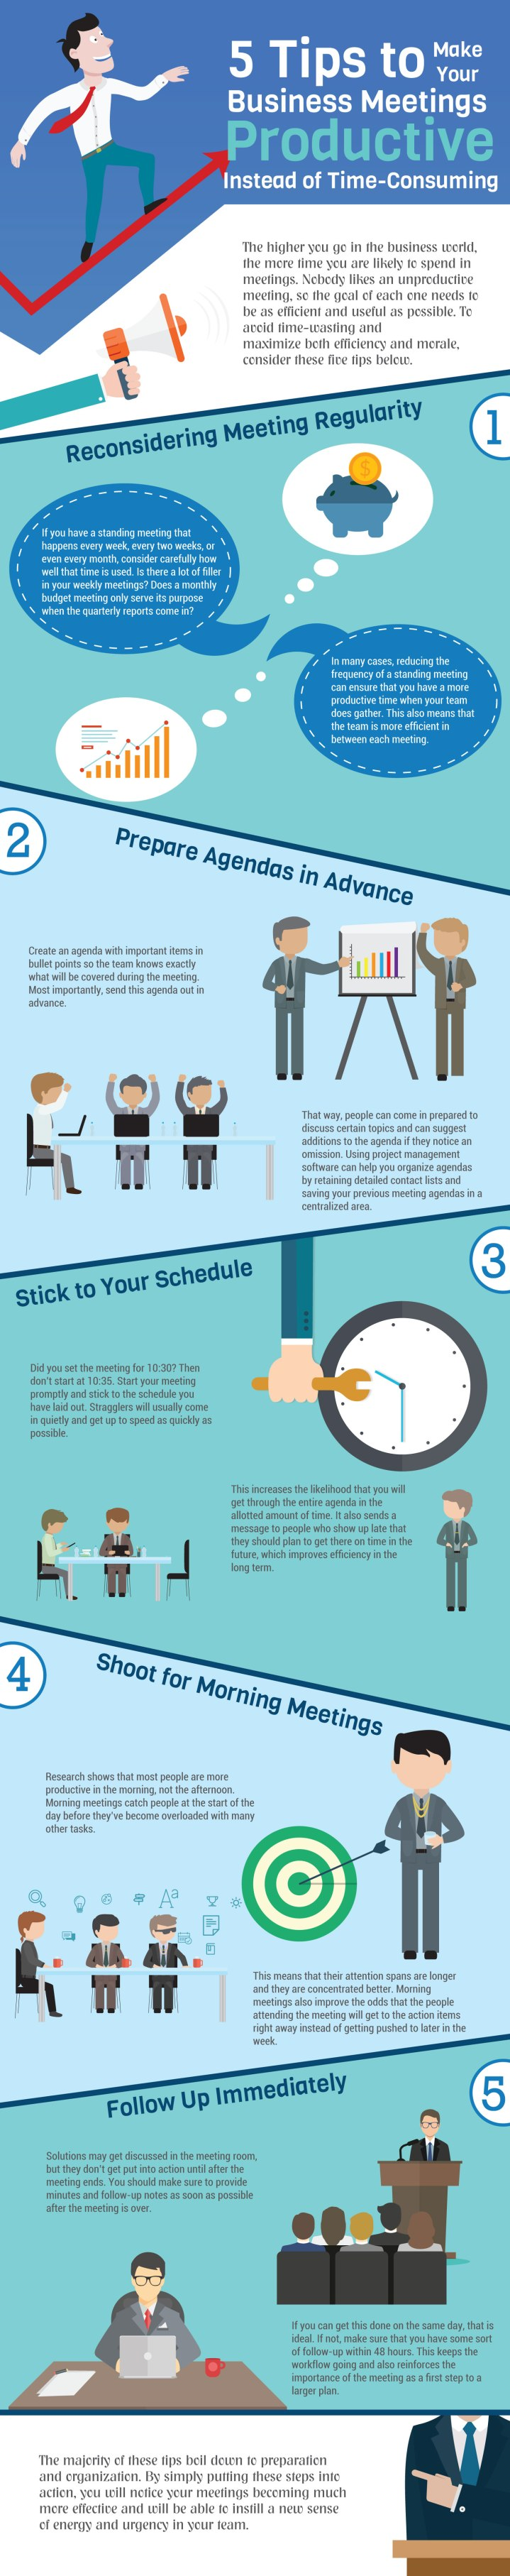 INFOGRAPHIC: 5 Tips to Make Your Business Meetings Productive Instead of Time-Consuming